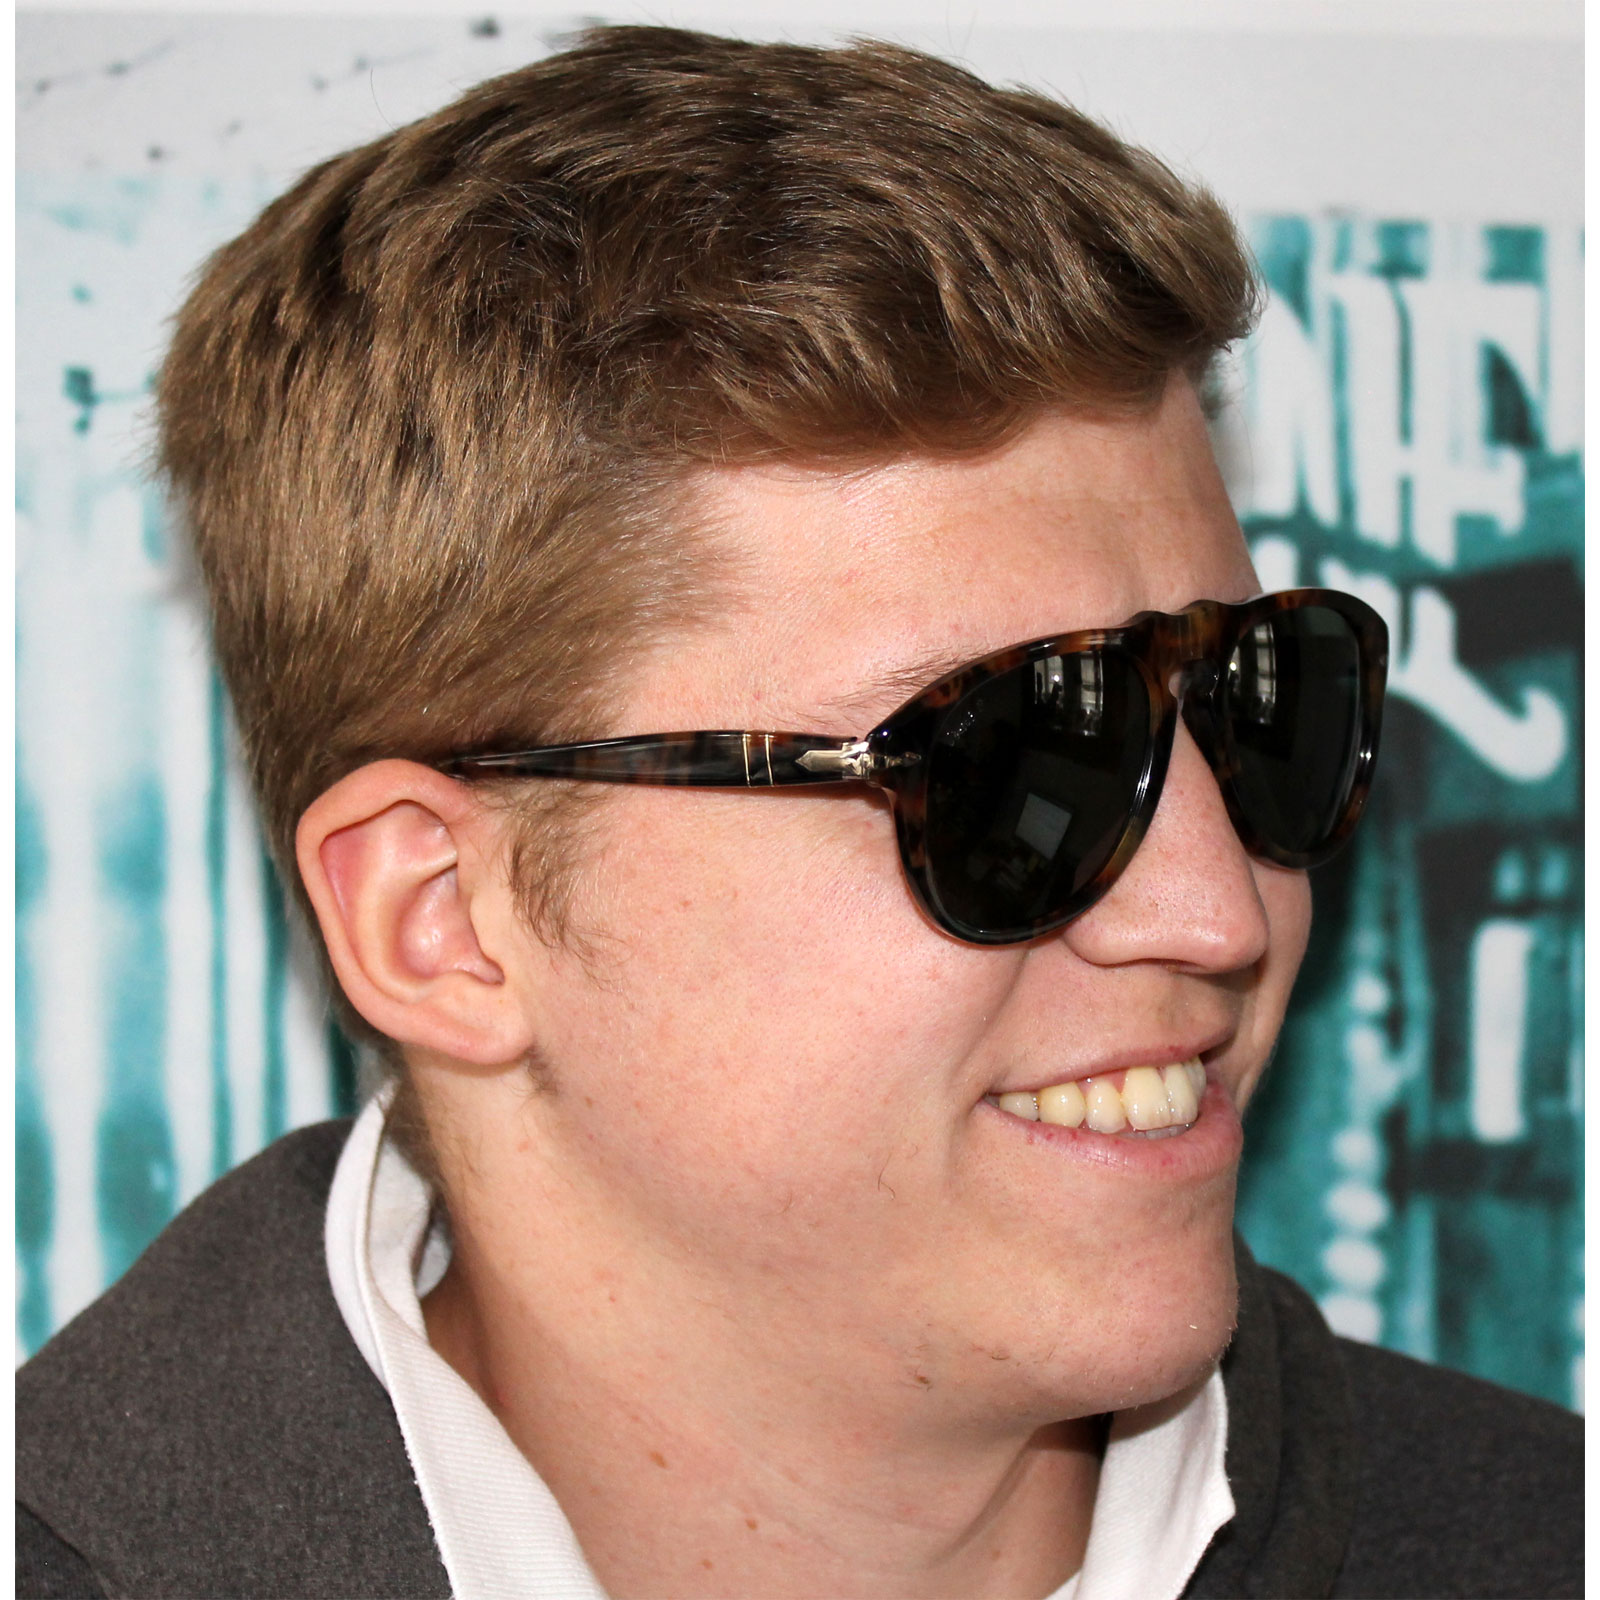 persol sunglasses 0649 108 58 spotted brown caffe green